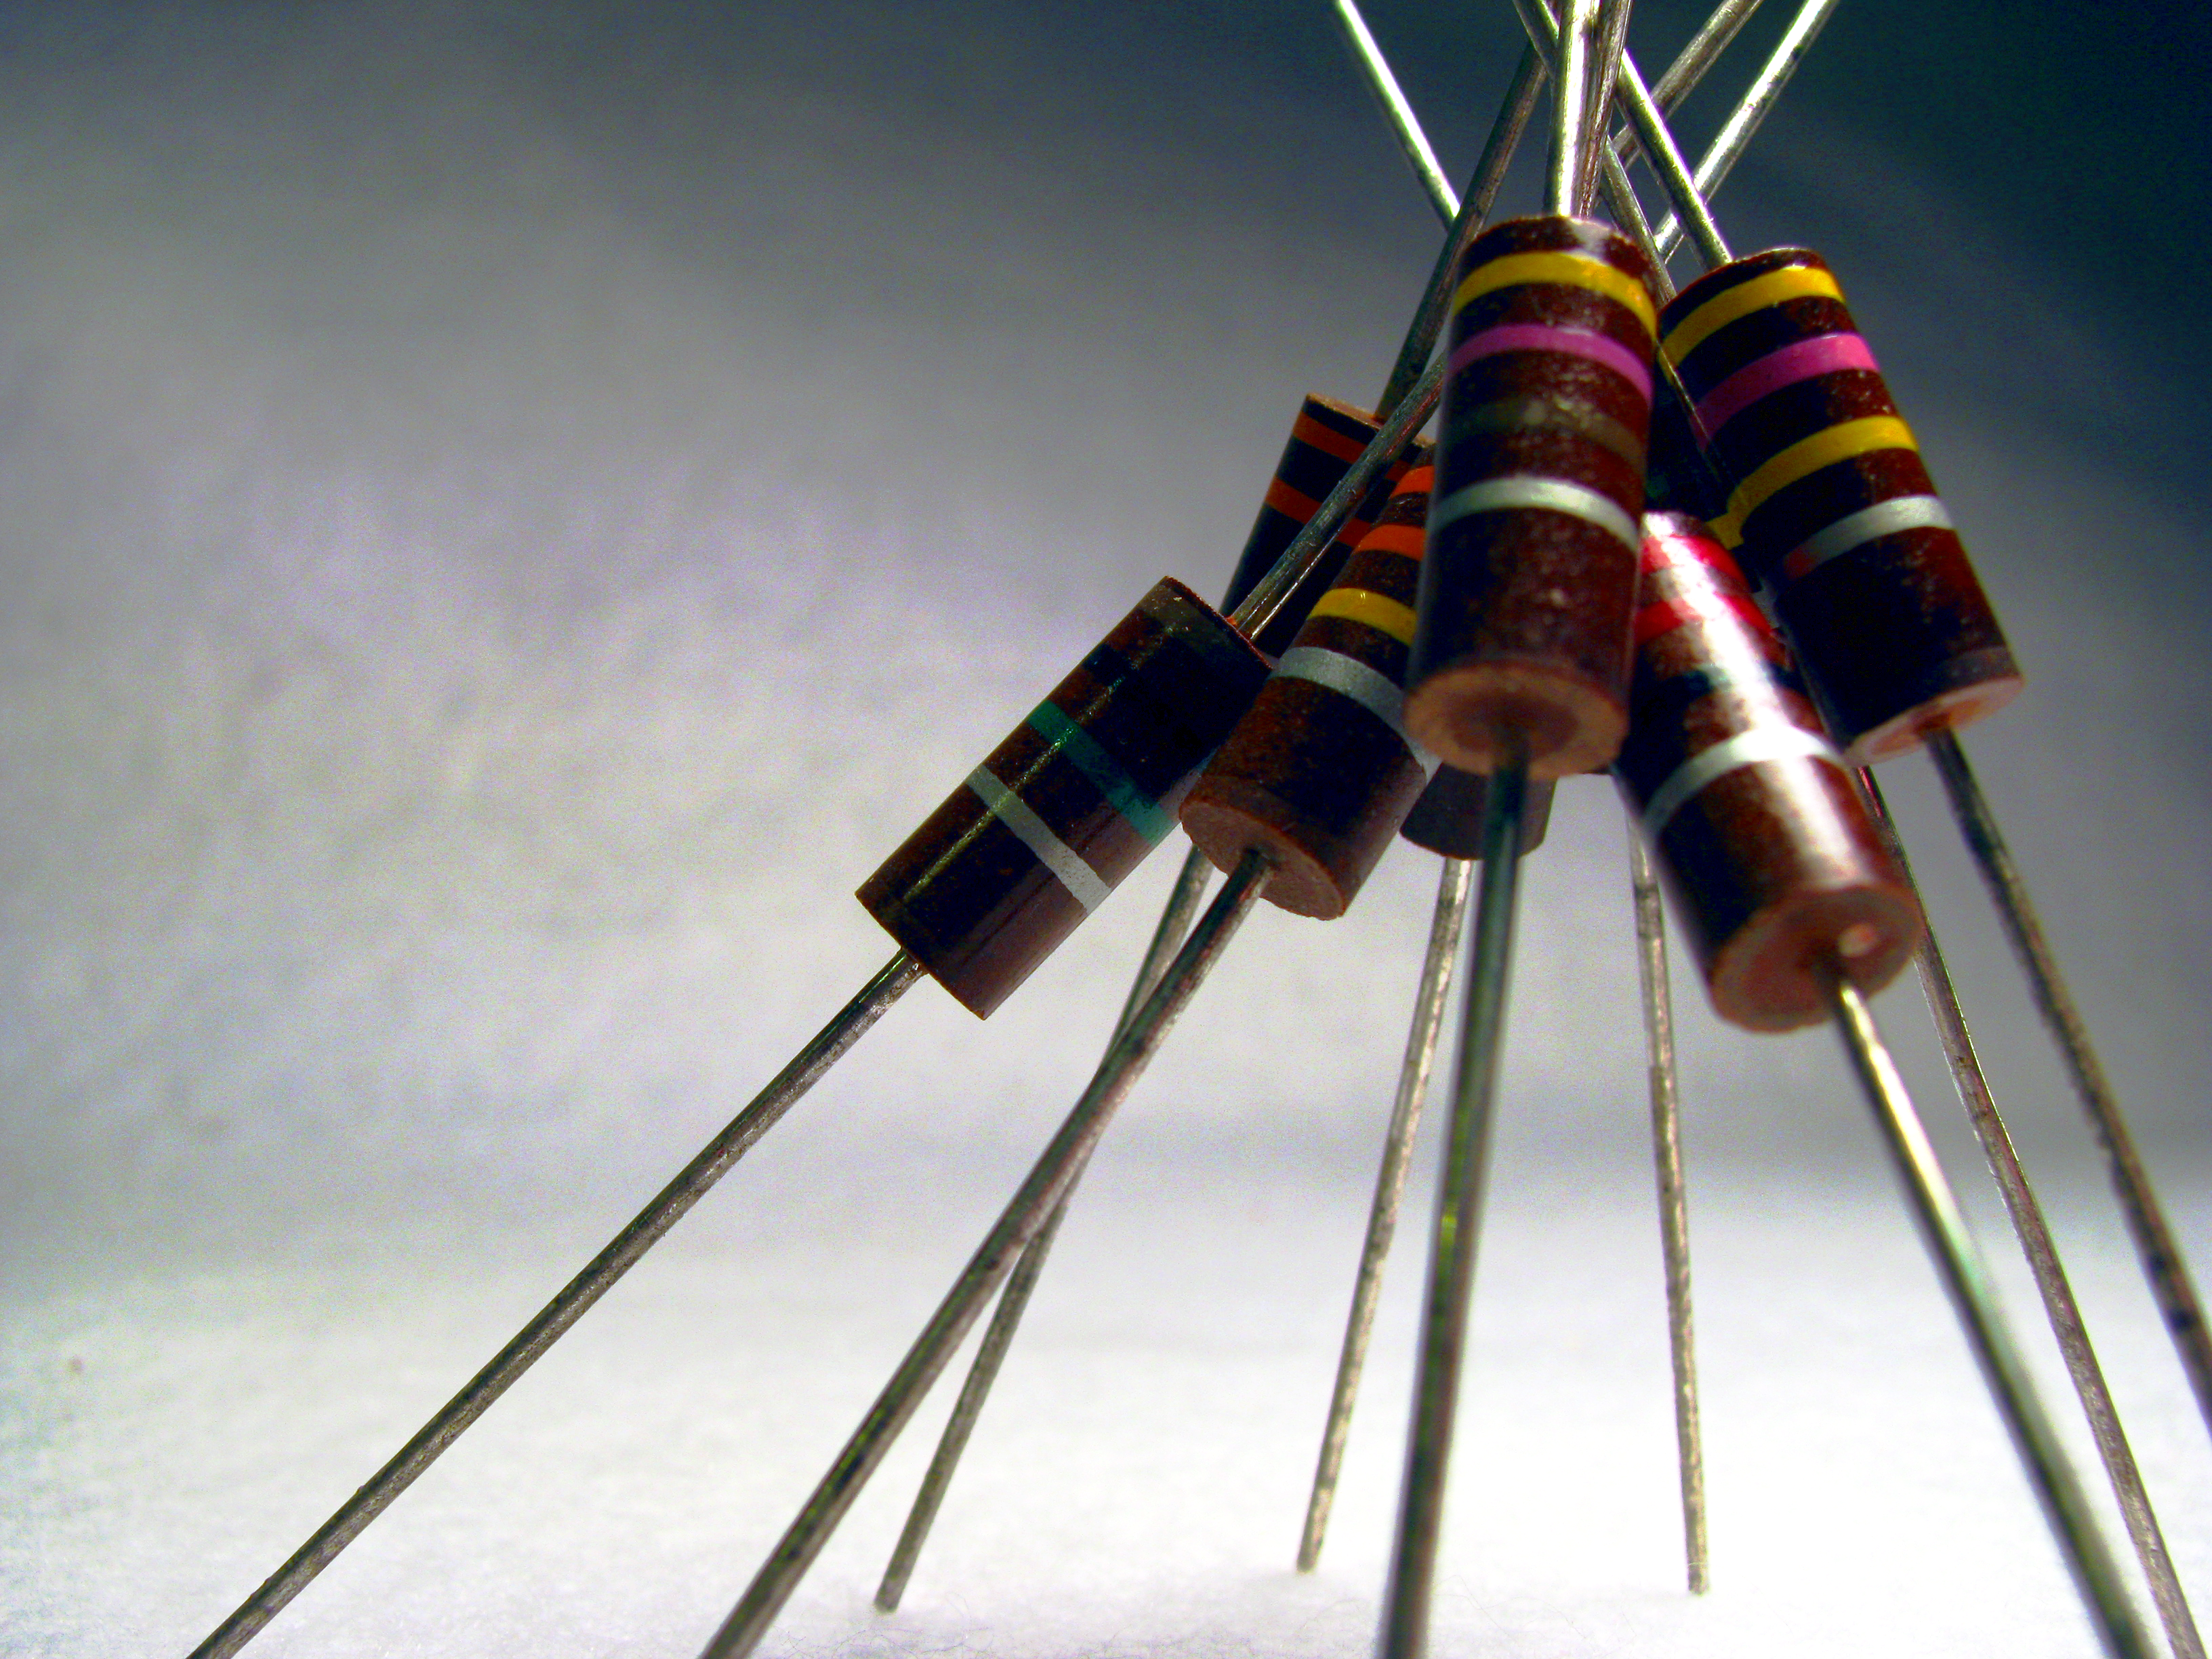 Image of through hole resistors stacked up together